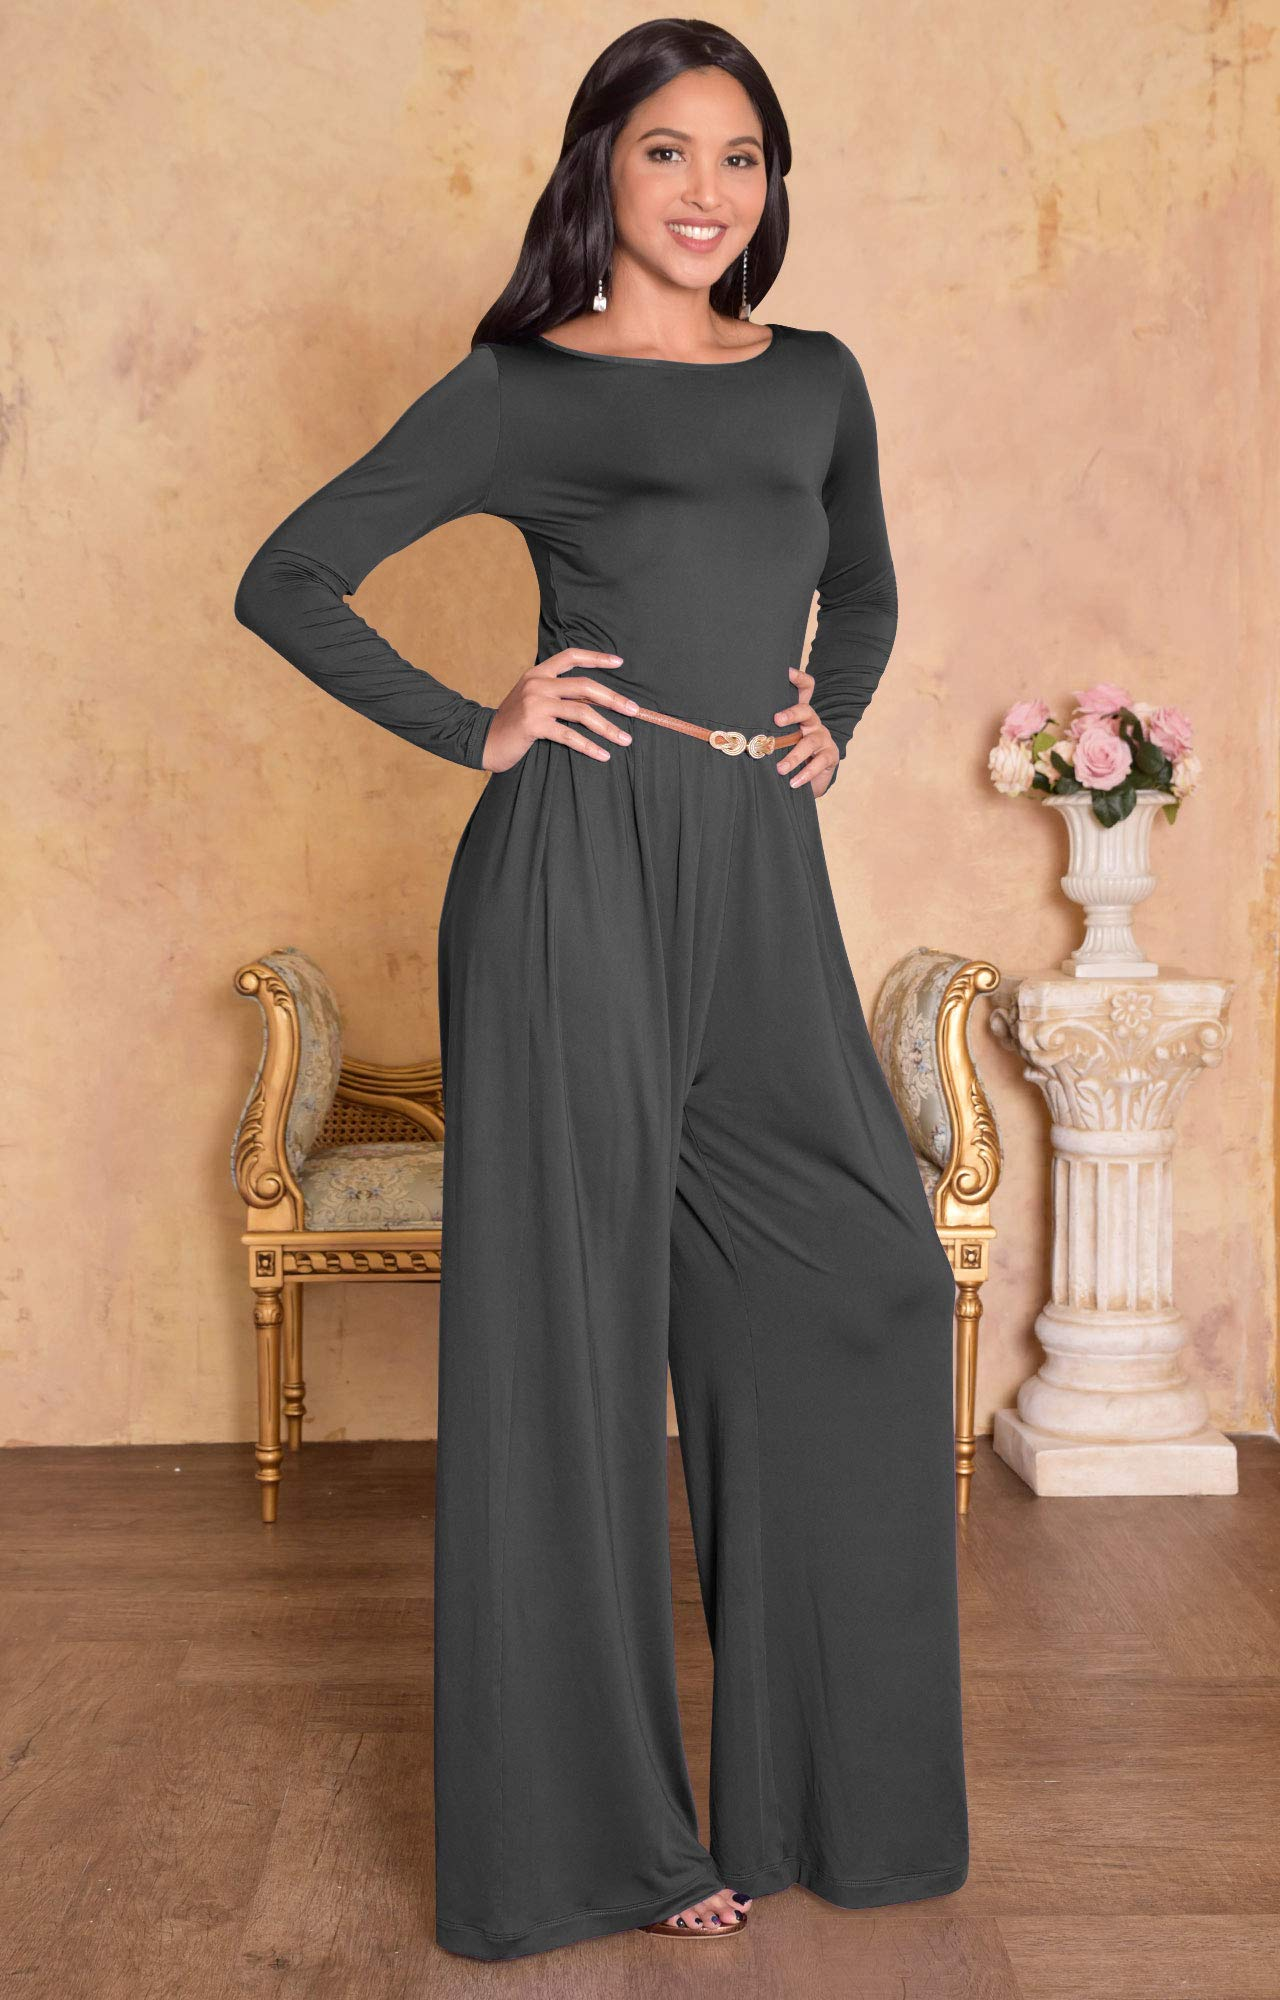 6ac1032d9c1f8 KOH KOH Womens Long Sleeve Wide Leg Belted Formal Elegant Cocktail Jumpsuit  < Jumpsuits, Rompers & Overalls < Clothing, Shoes & Jewelry - tibs